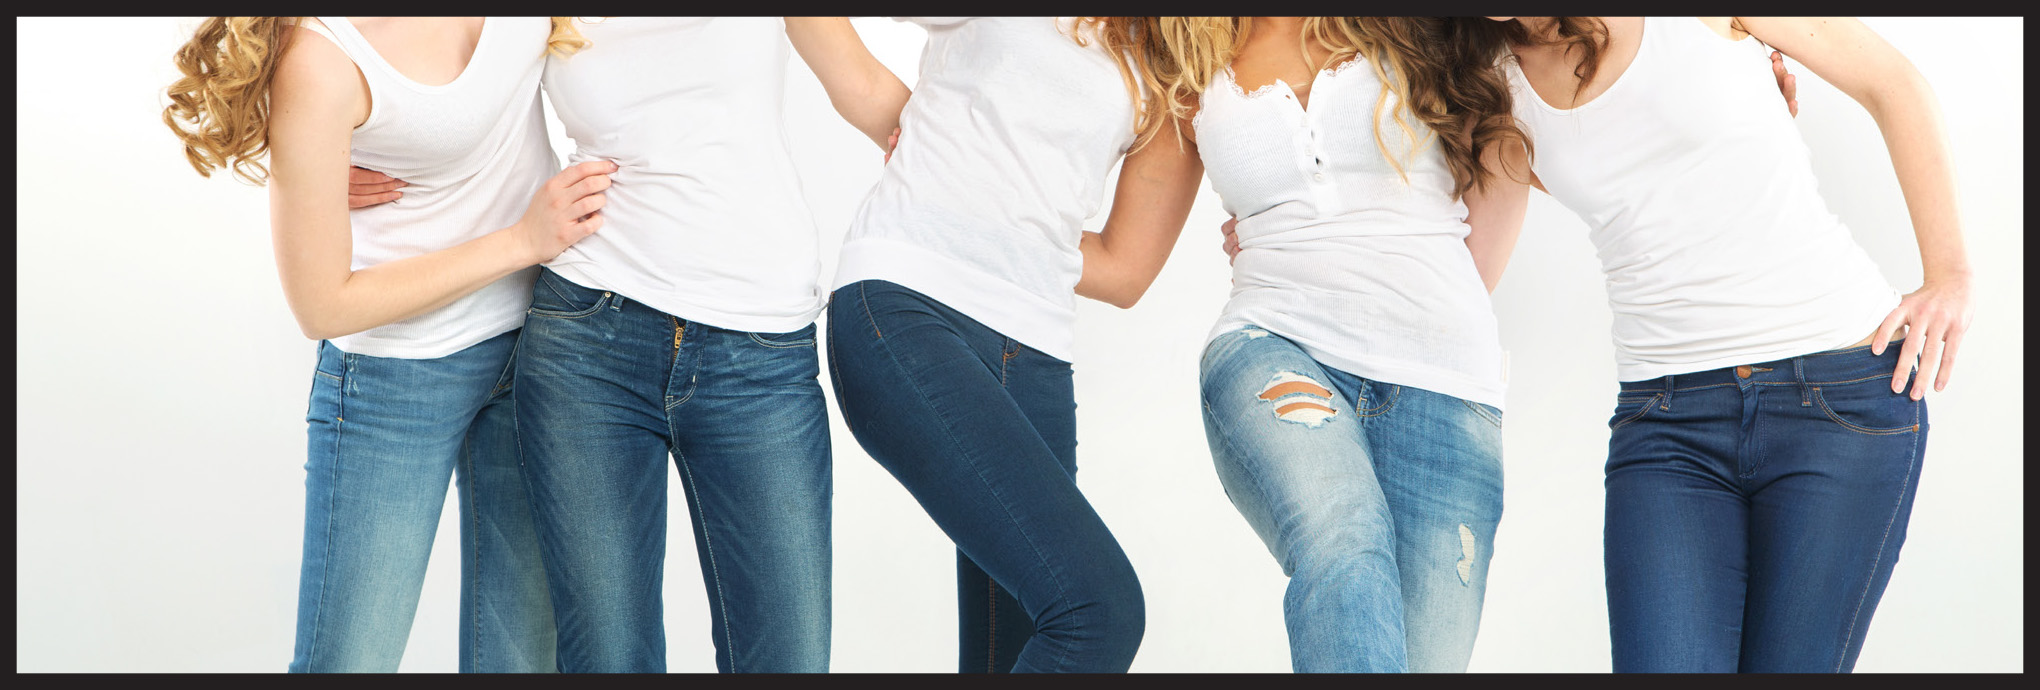 find-your-target-market-jeans-industry